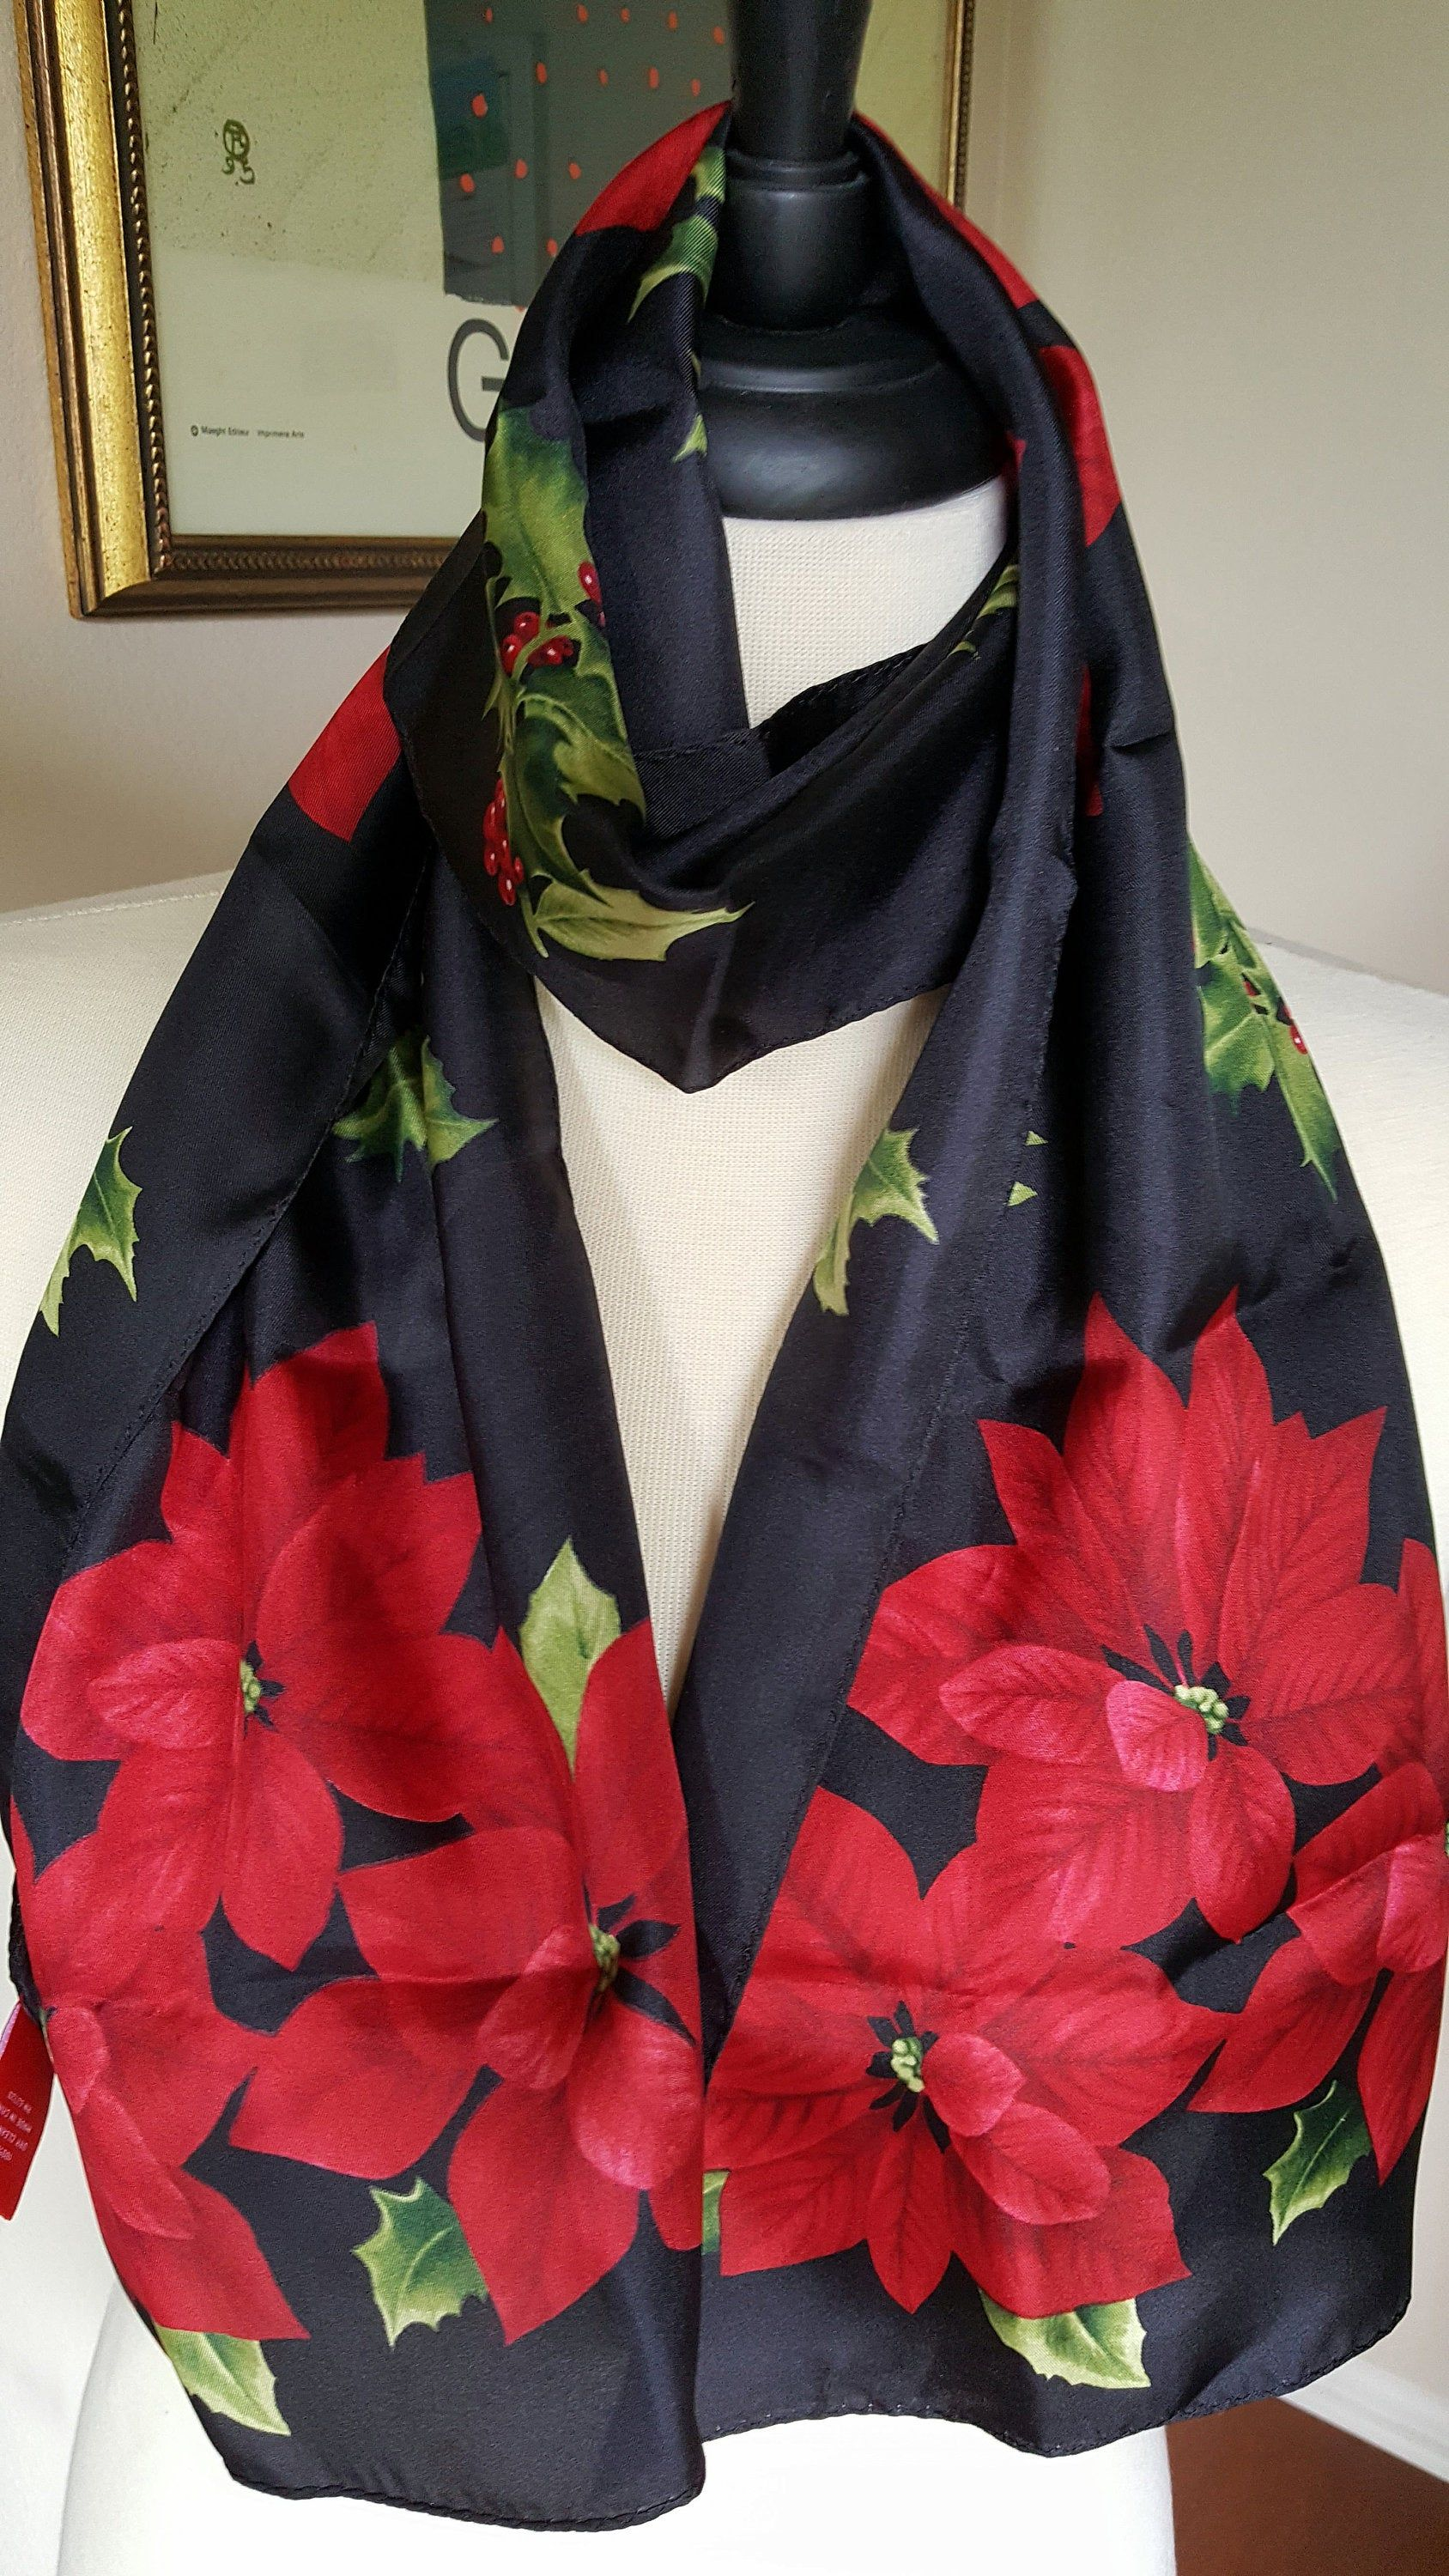 Red Blue Green Poinsettia flower Soft Satin Feel Christmas Festive Scarf Gift